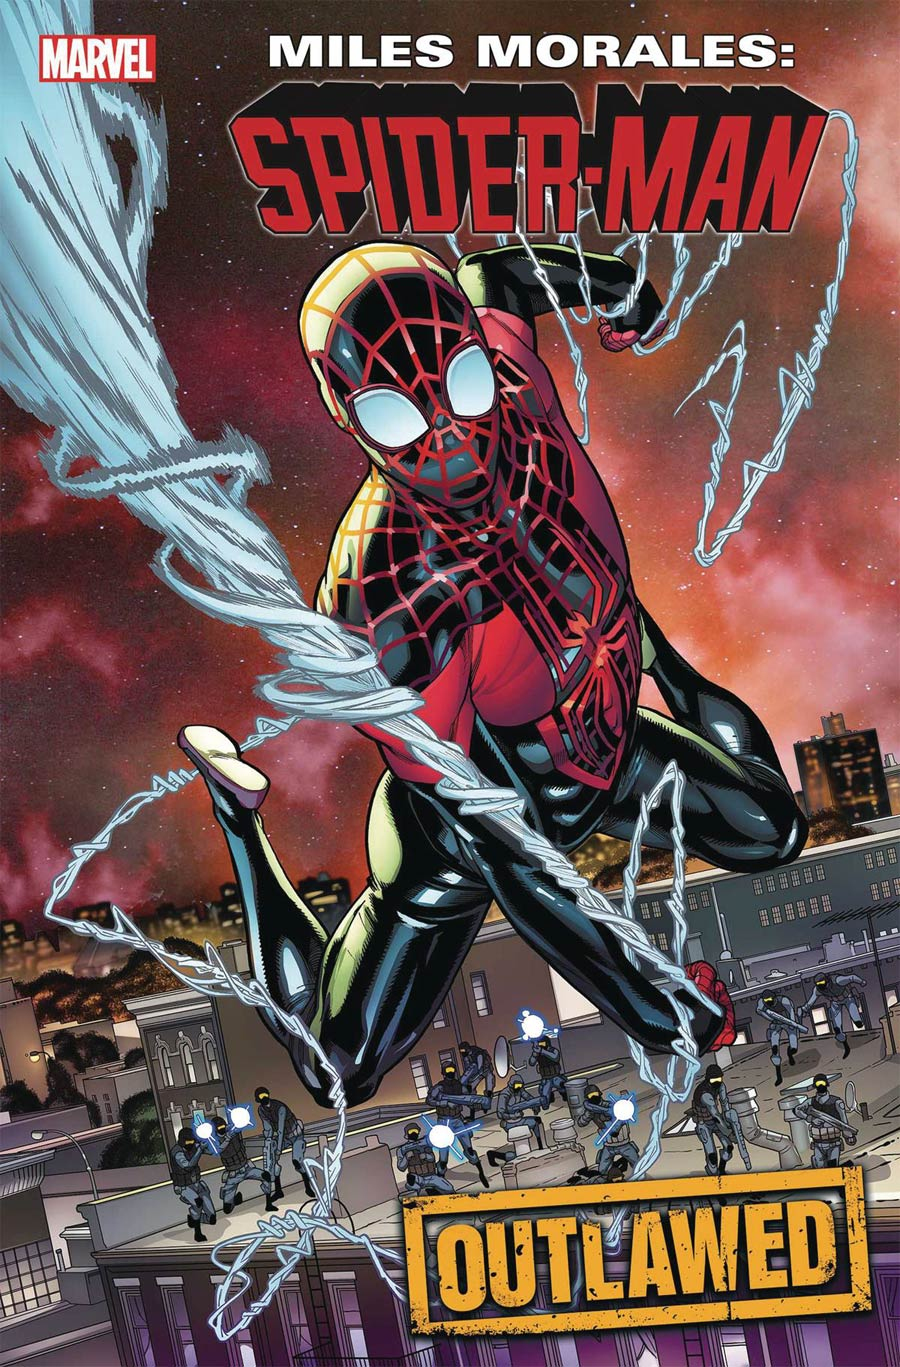 Miles Morales Spider-Man #17 Cover A Regular Javier Garron Cover (Outlawed Tie-In)